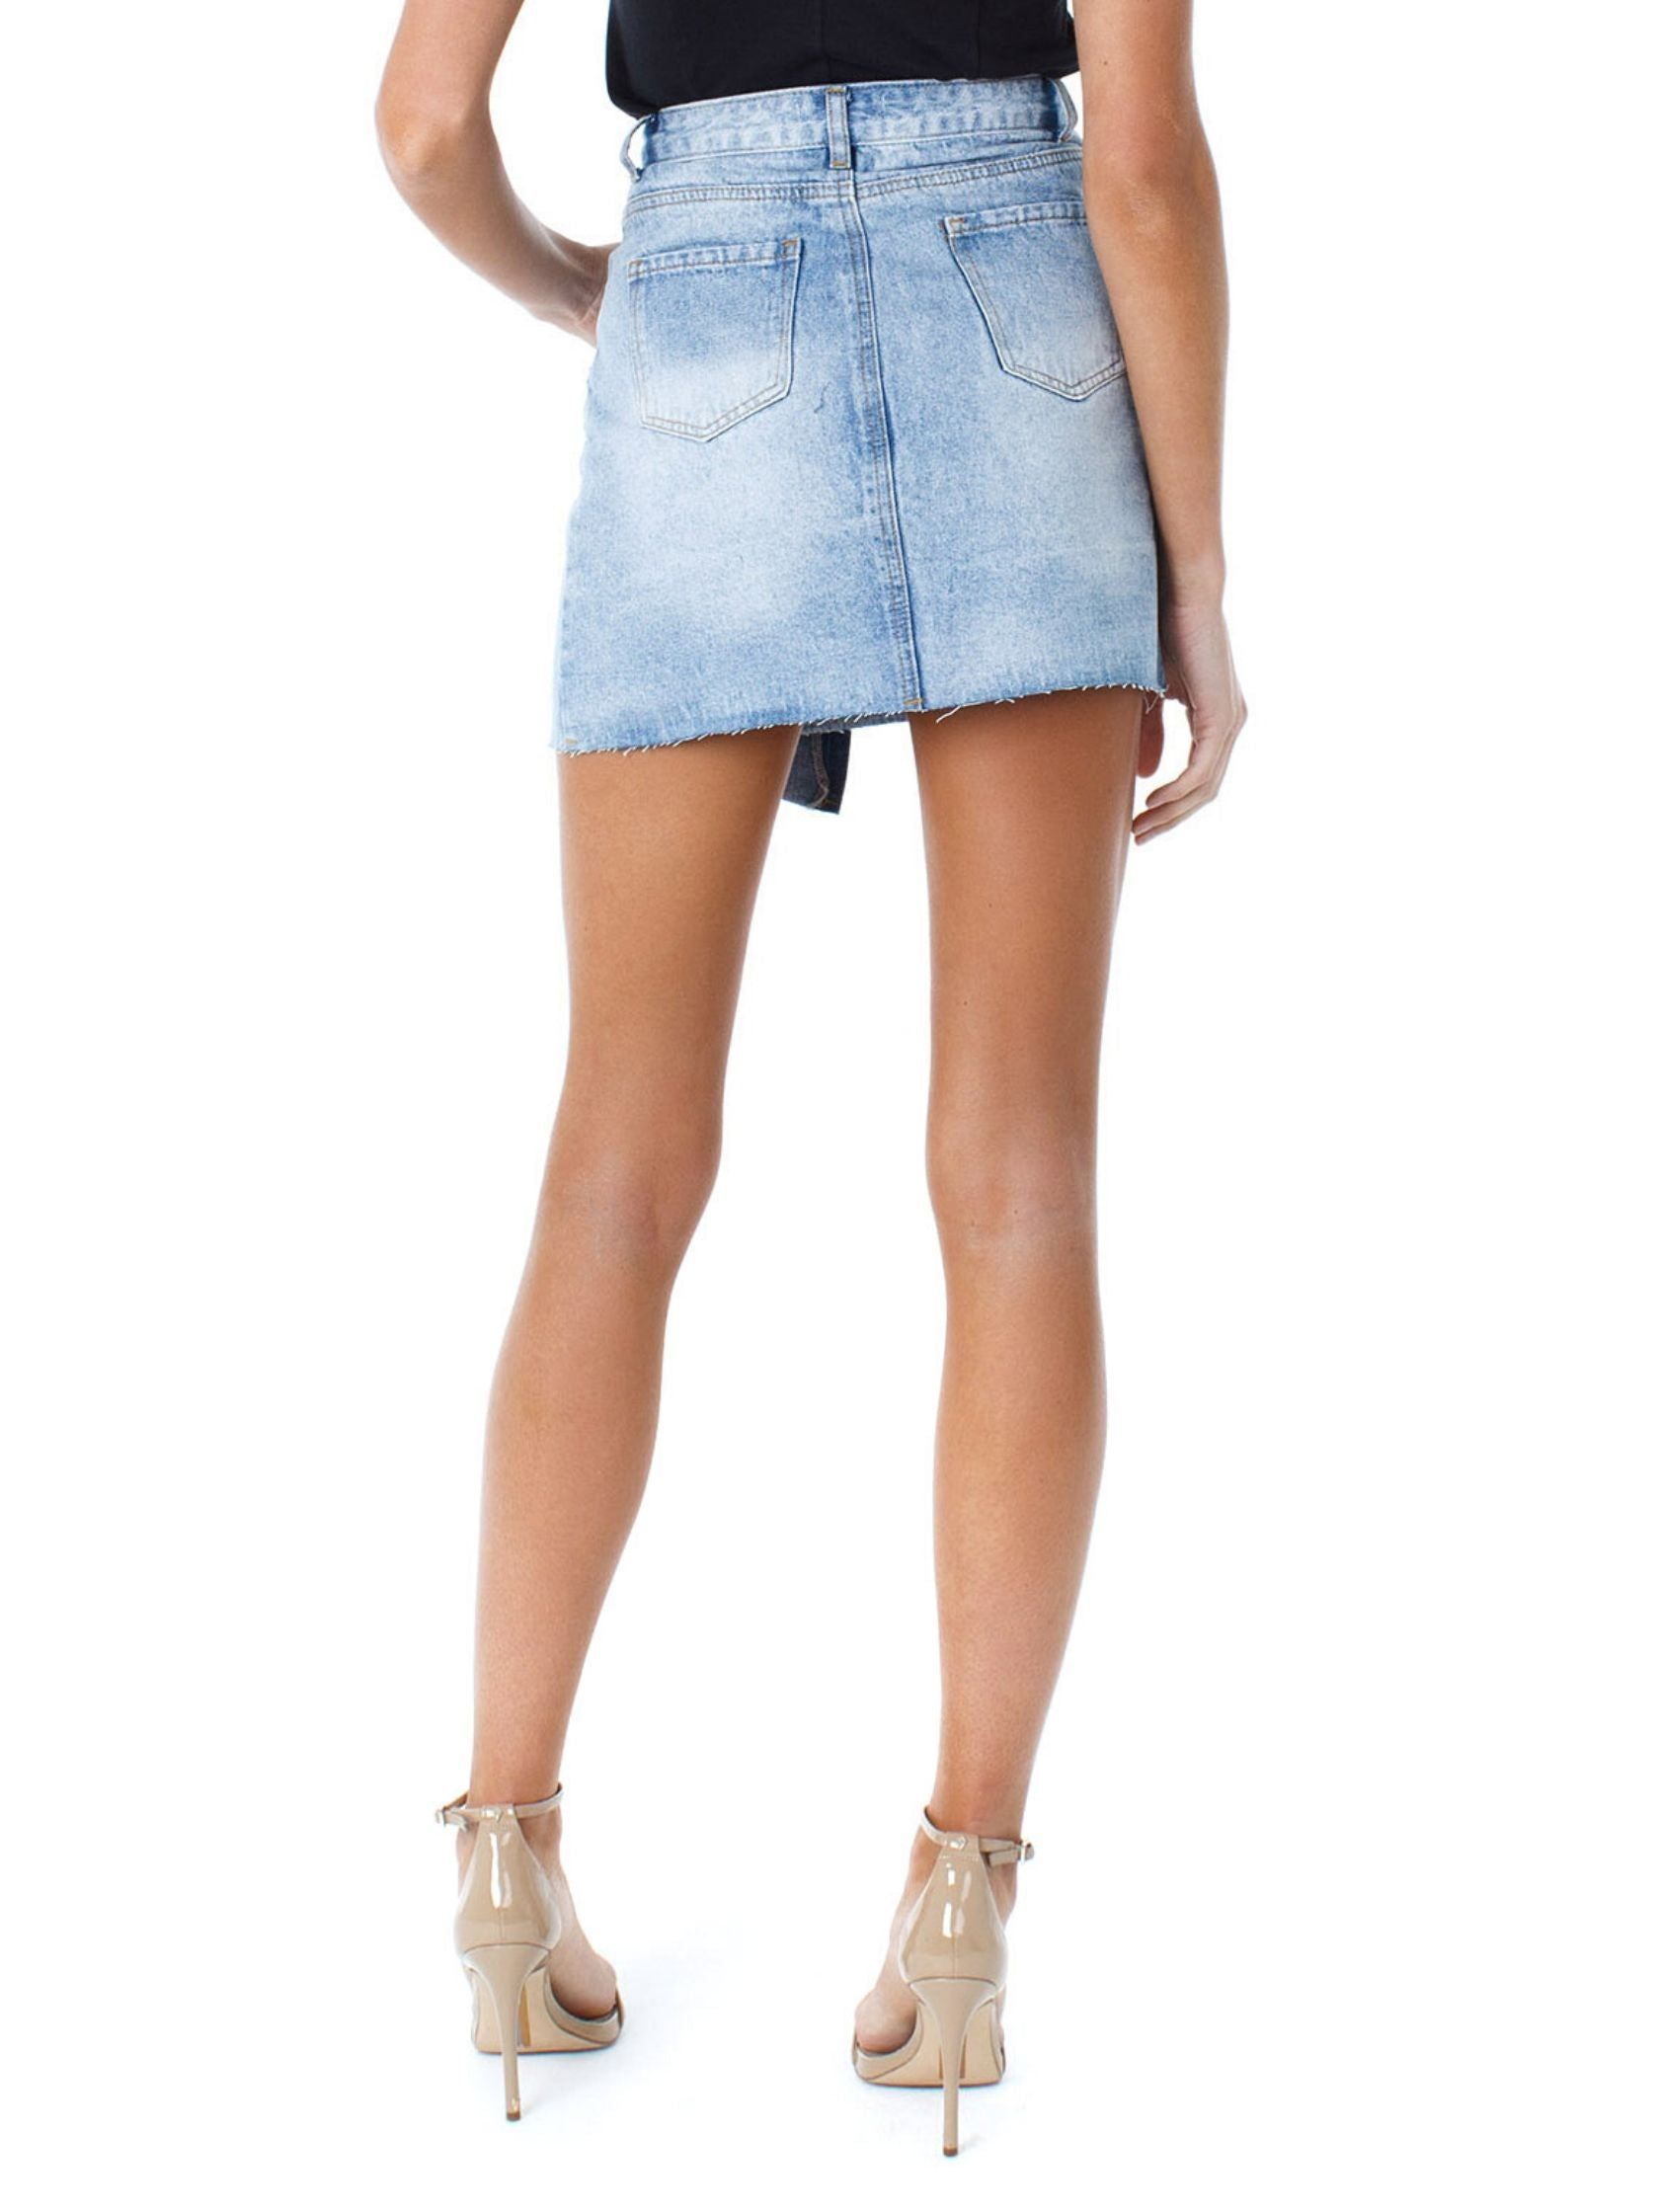 Women outfit in a skirt rental from SAGE THE LABEL called Summer Nights Mini Skirt